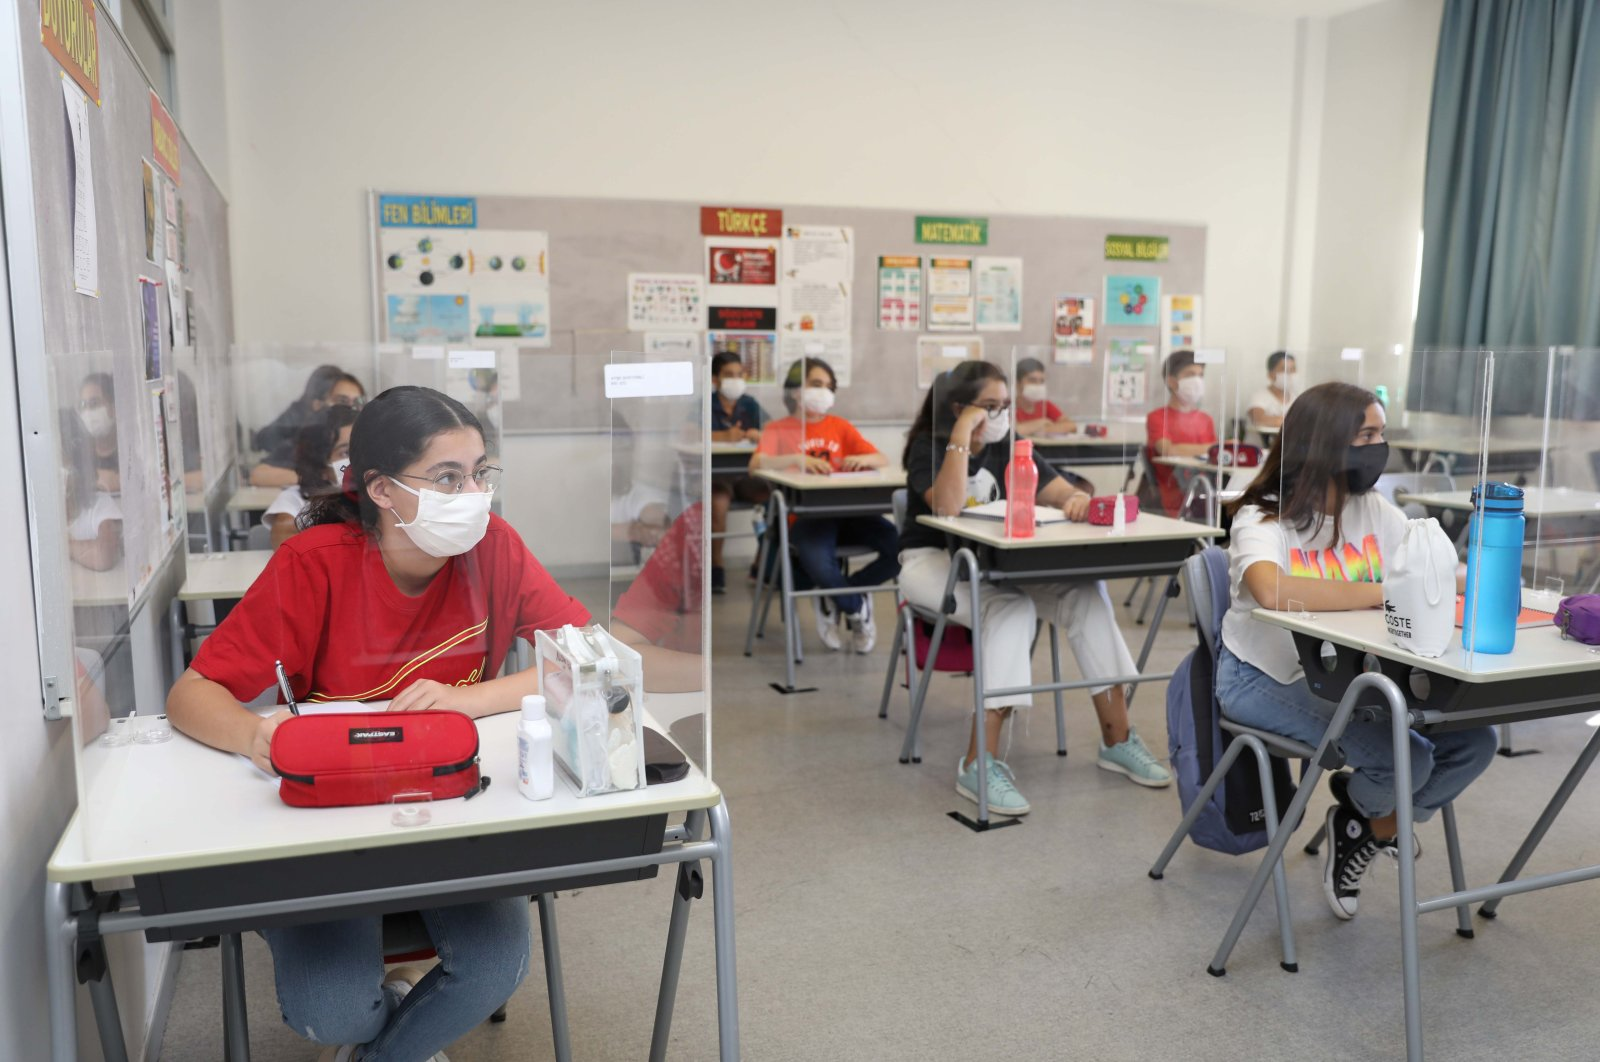 Students wearing protective masks attend a class in a private school, in Gaziantep, southern Turkey, Aug. 28, 2020. (İHA Photo)